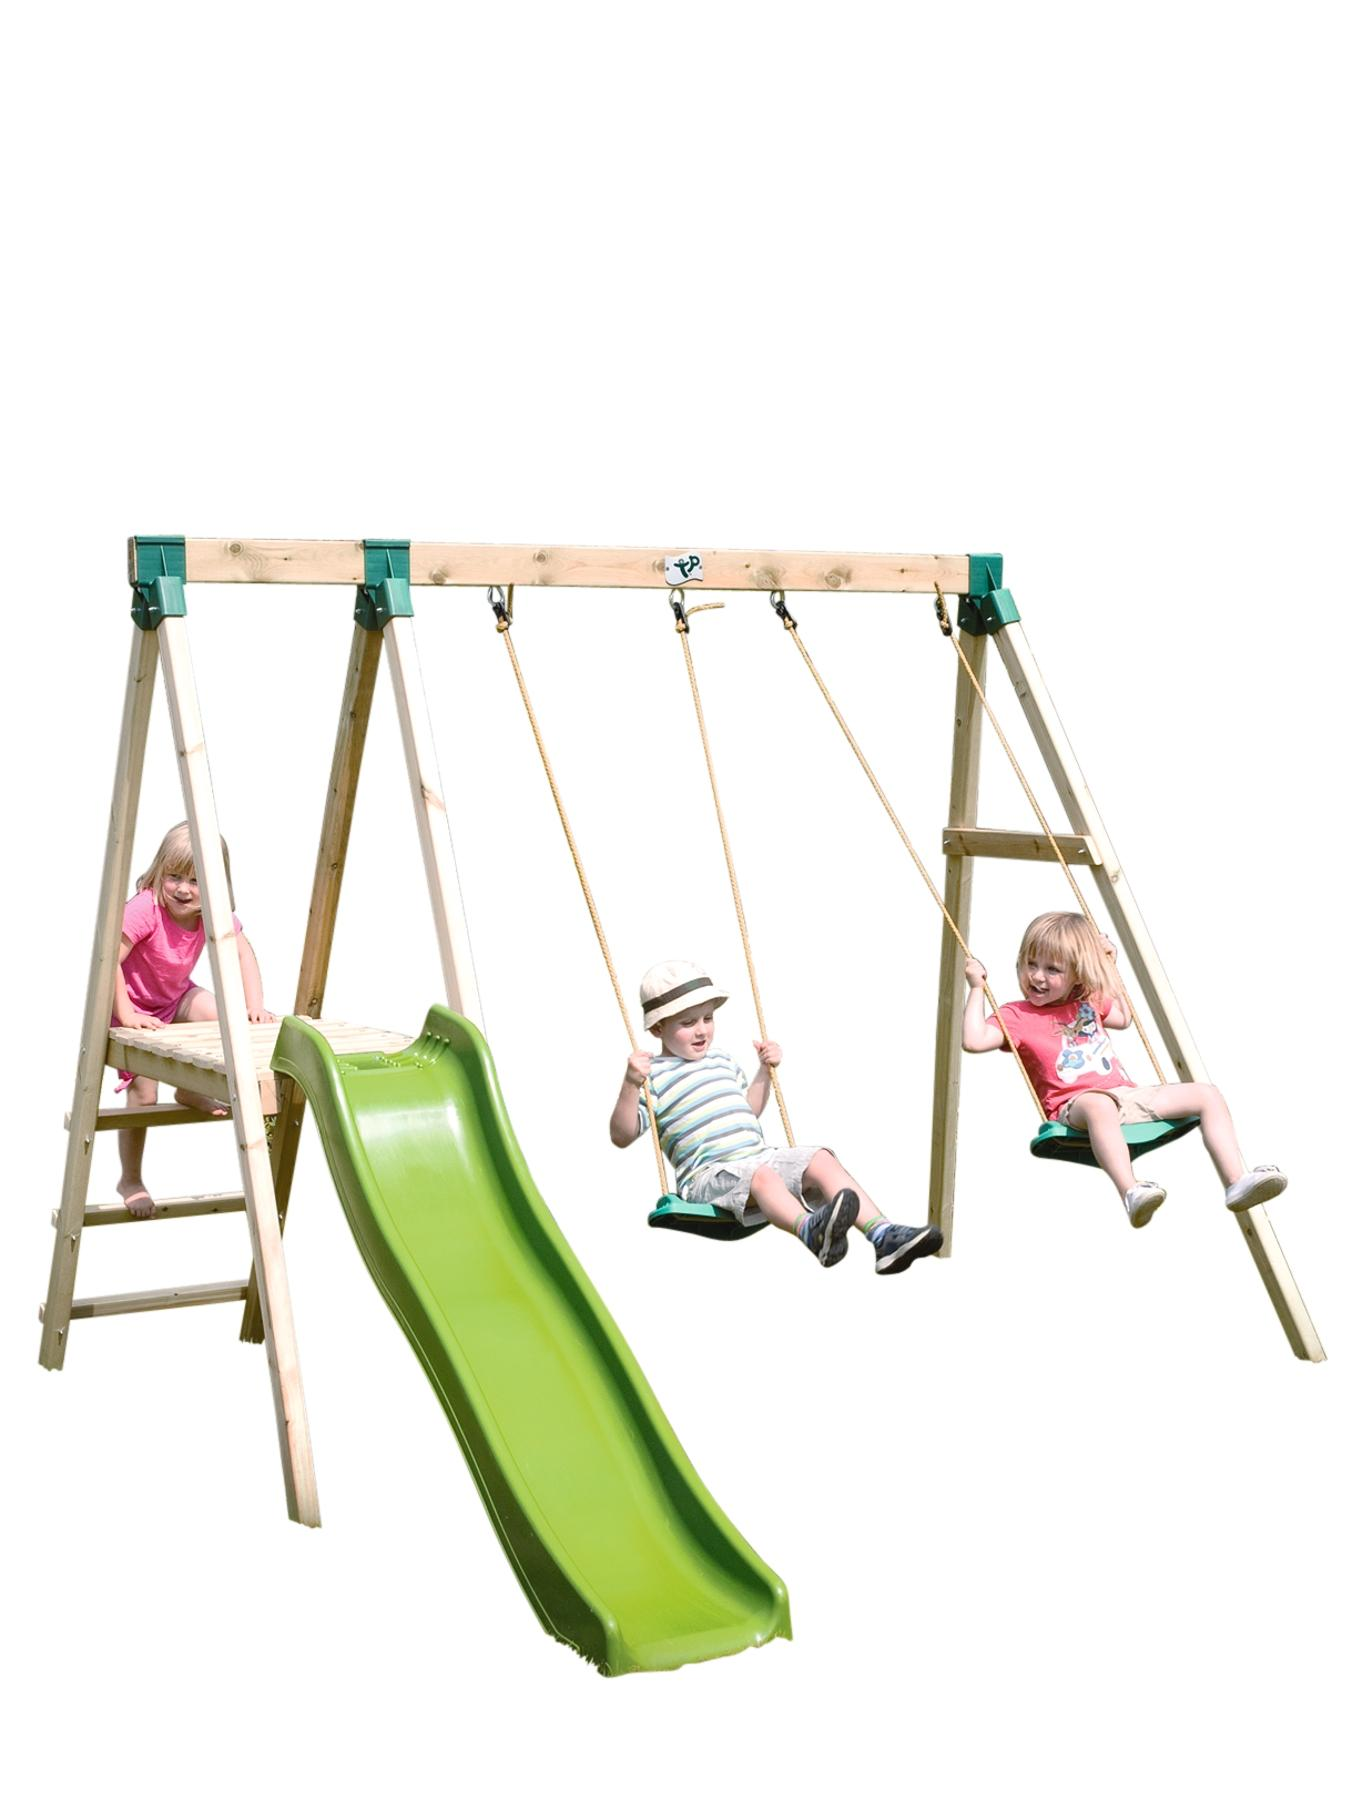 TP Forest Multiplay Garden Swing and Slide Set